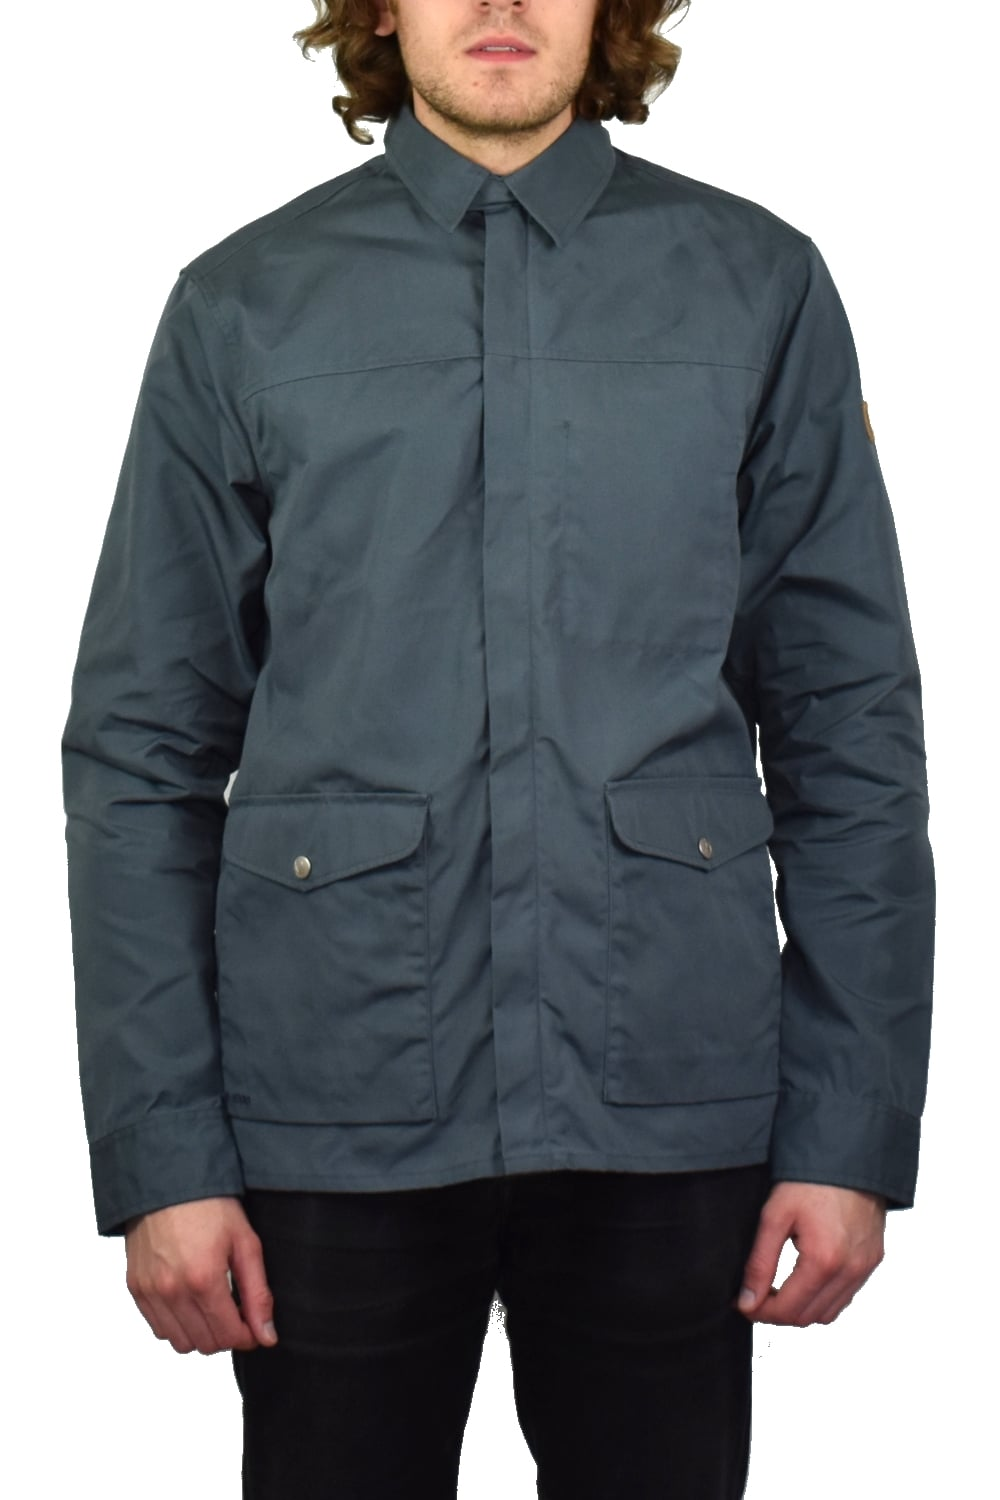 Fjallraven Greenland Zip Jacket